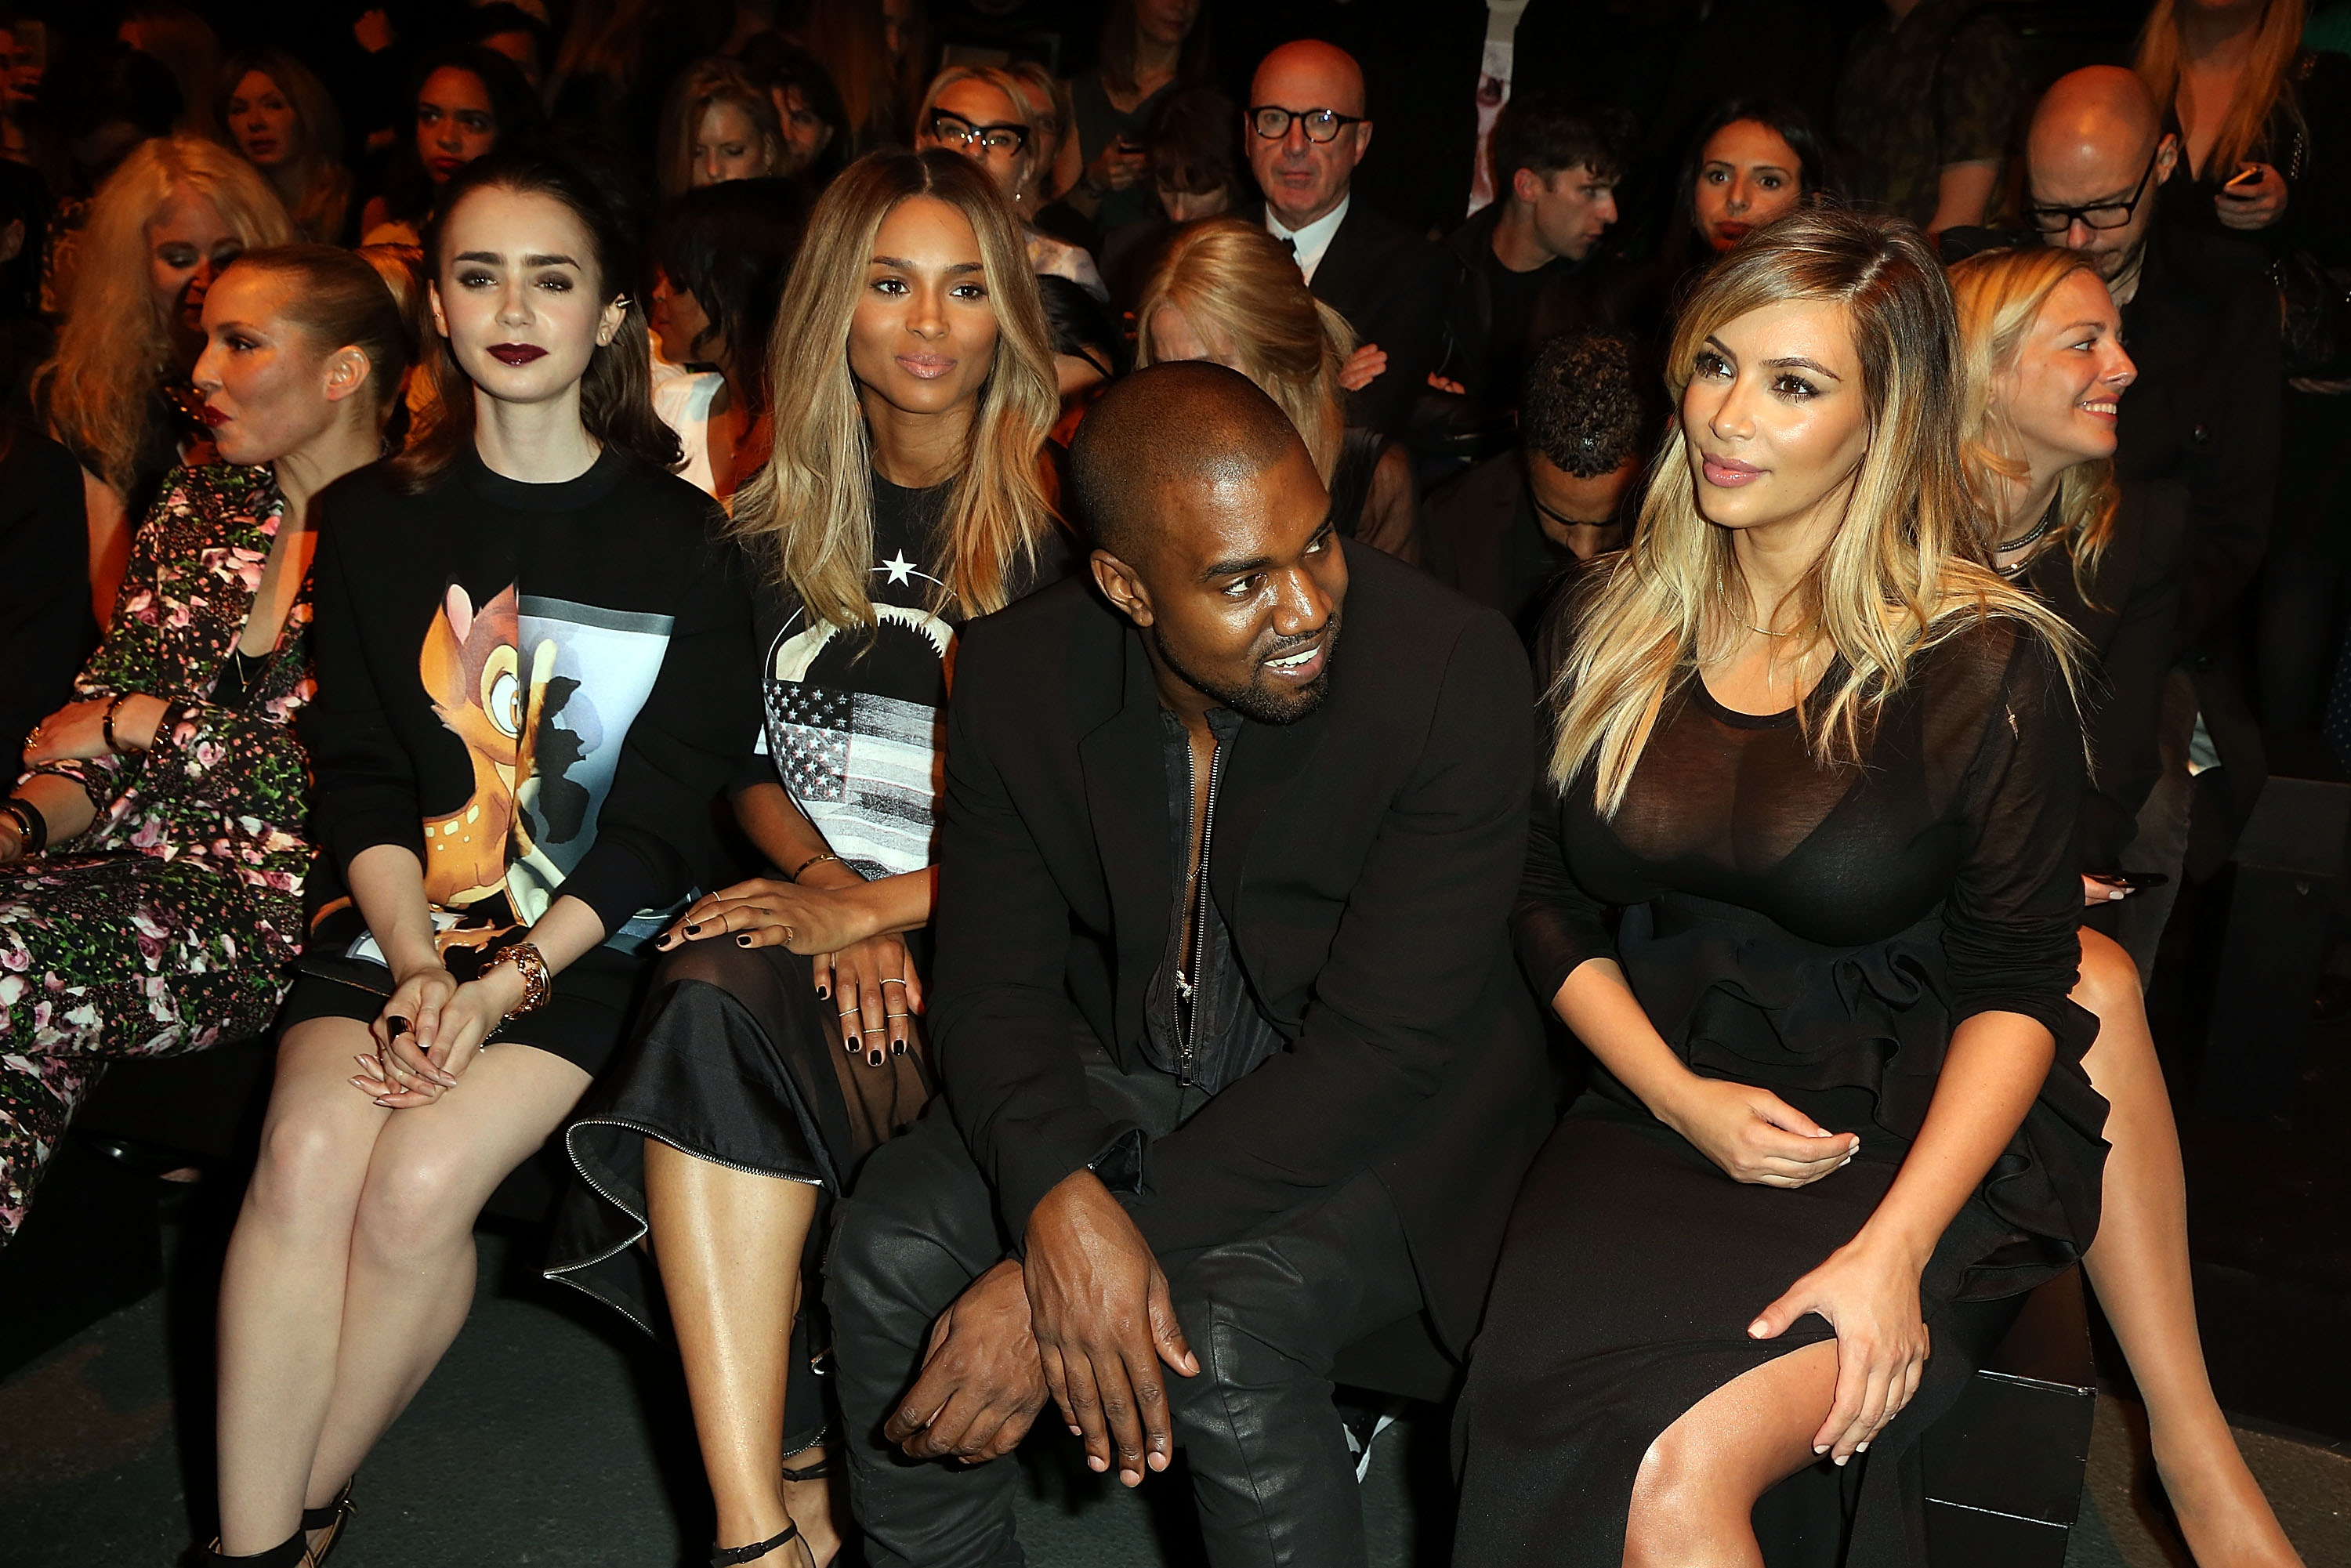 Lily Collins, Kim Kardanshian, Kanye West and Ciara attend the Givenchy Spring/Summer 2014 fashion show.